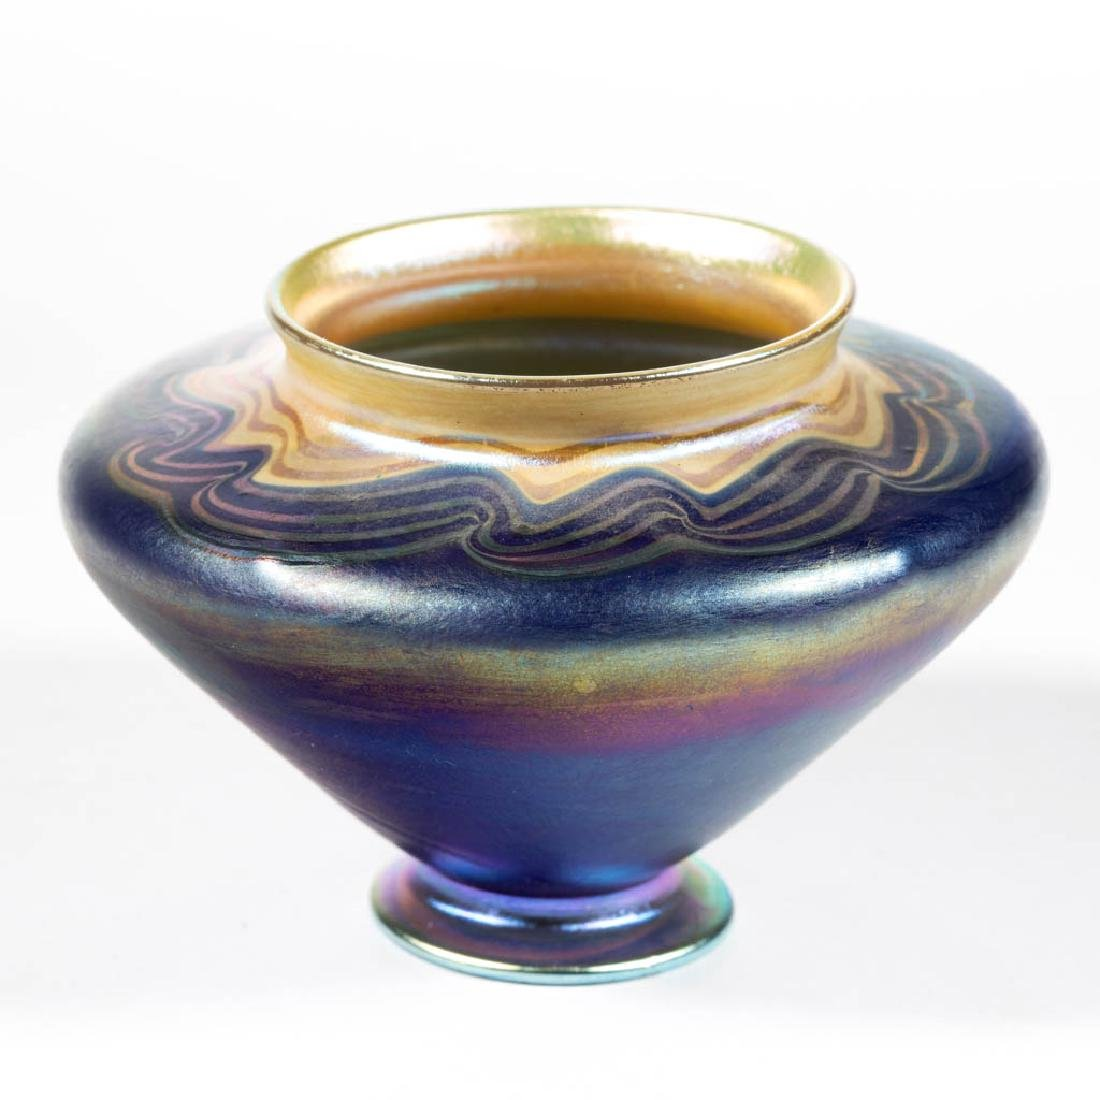 TIFFANY FAVRILE WAVE-DECORATED IRIDESCENT ART GLASS